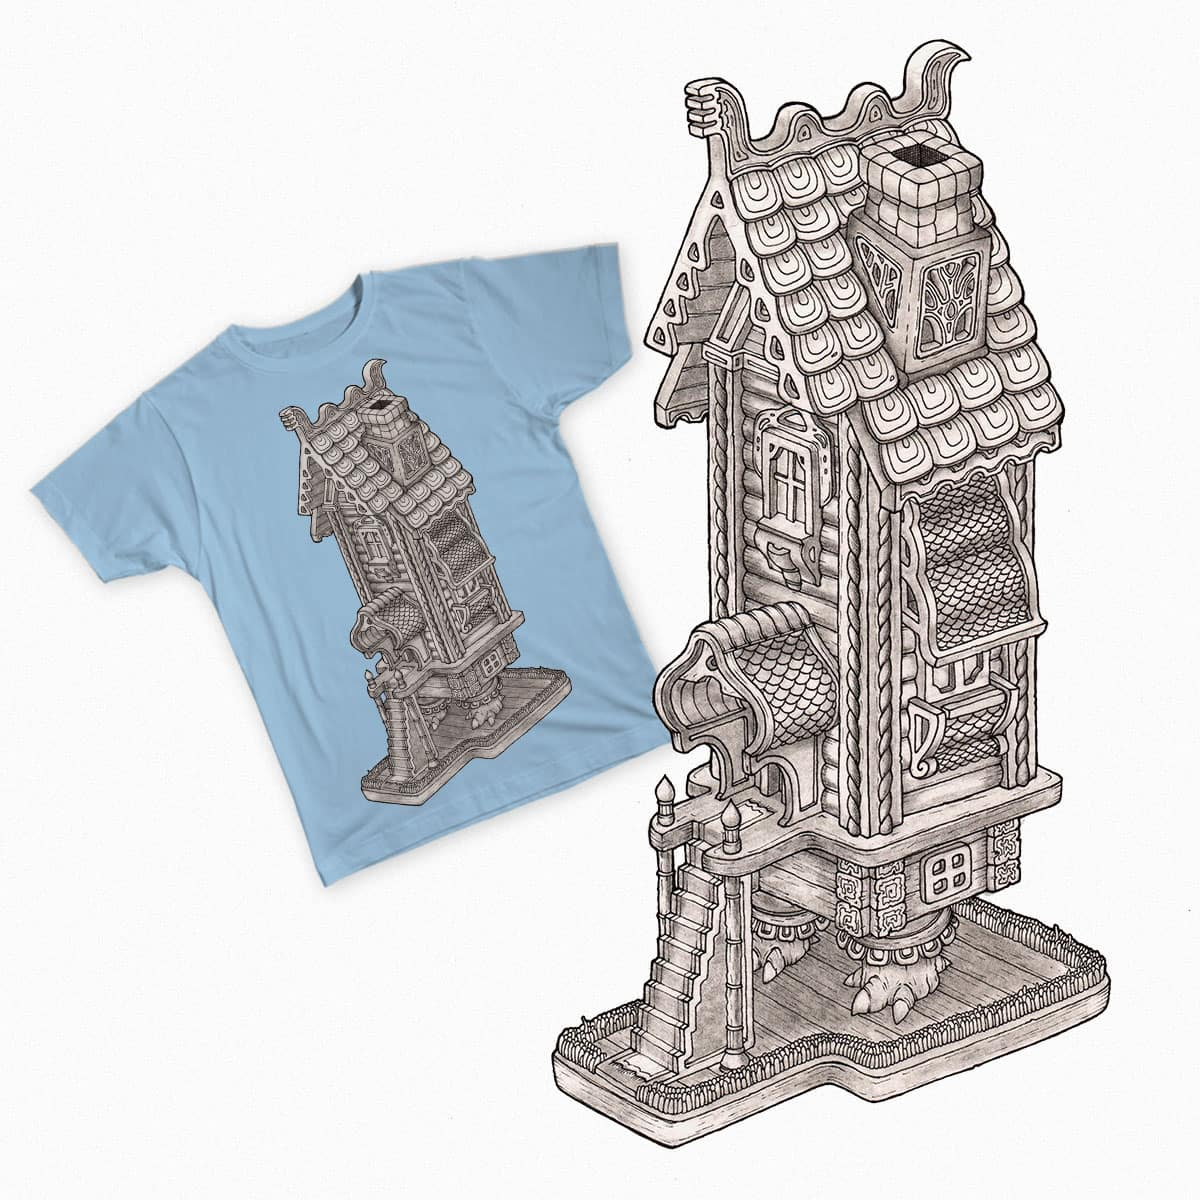 Hut by Astafyev on Threadless